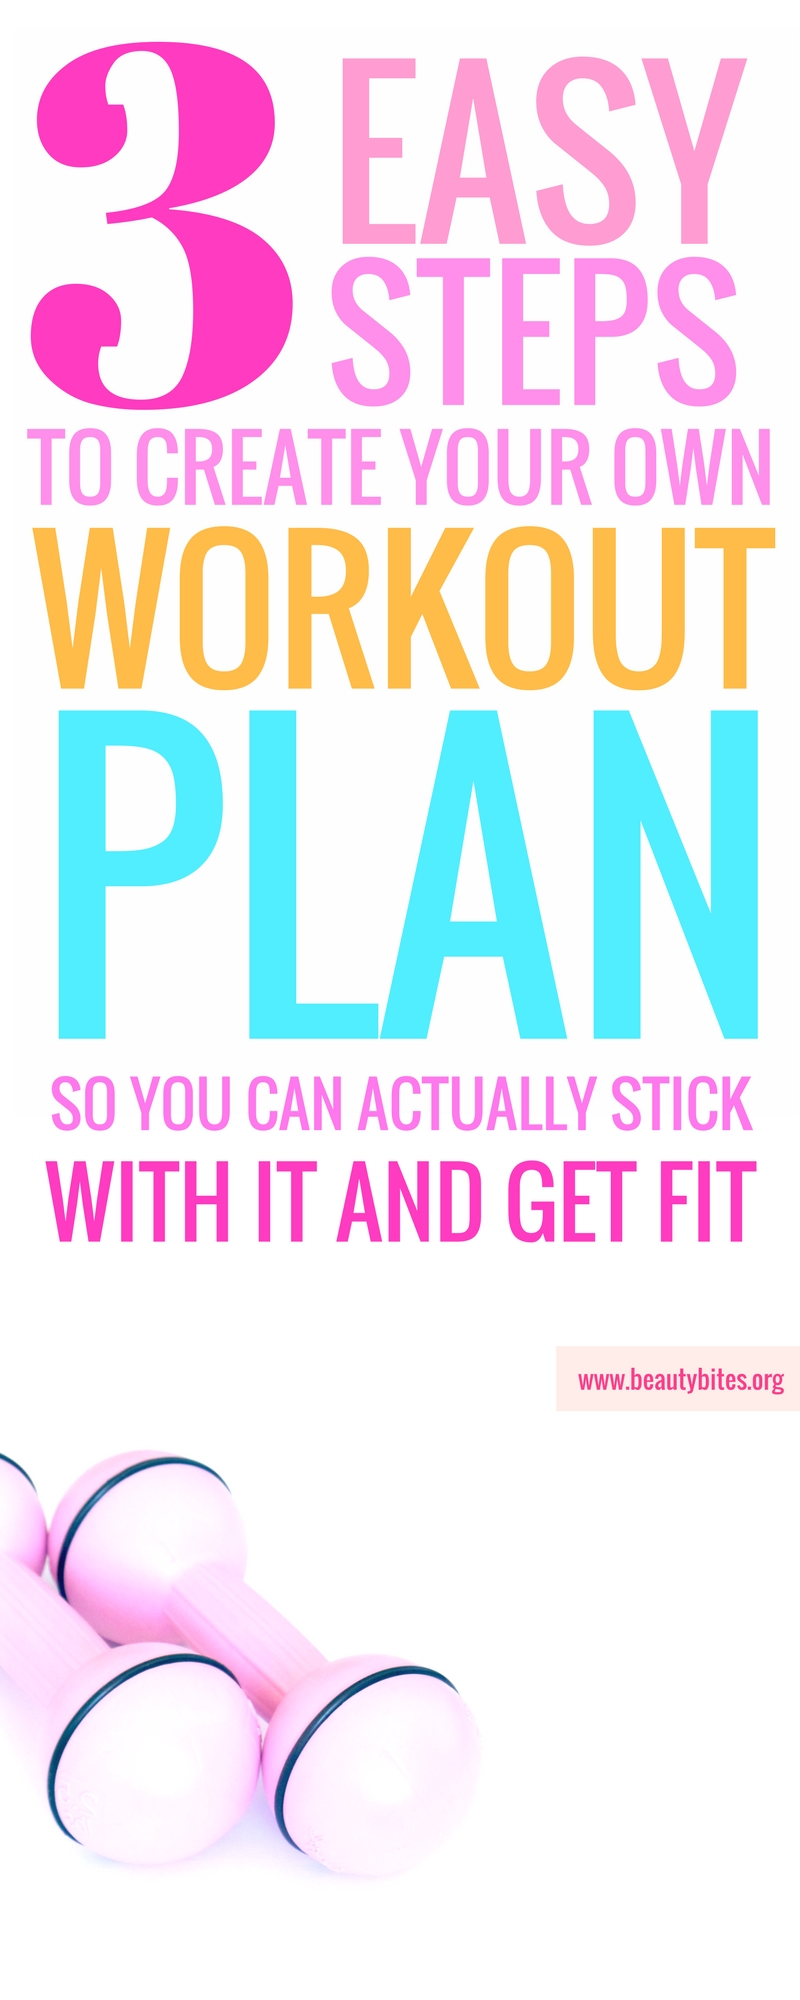 If you need a workout plan to lose weight or get fit, you better create your own! These steps will help you do that, so you can stick to that plan whether you're a beginner or advanced! | beautybites.org | Workout plan for women | Workout plan for beginners